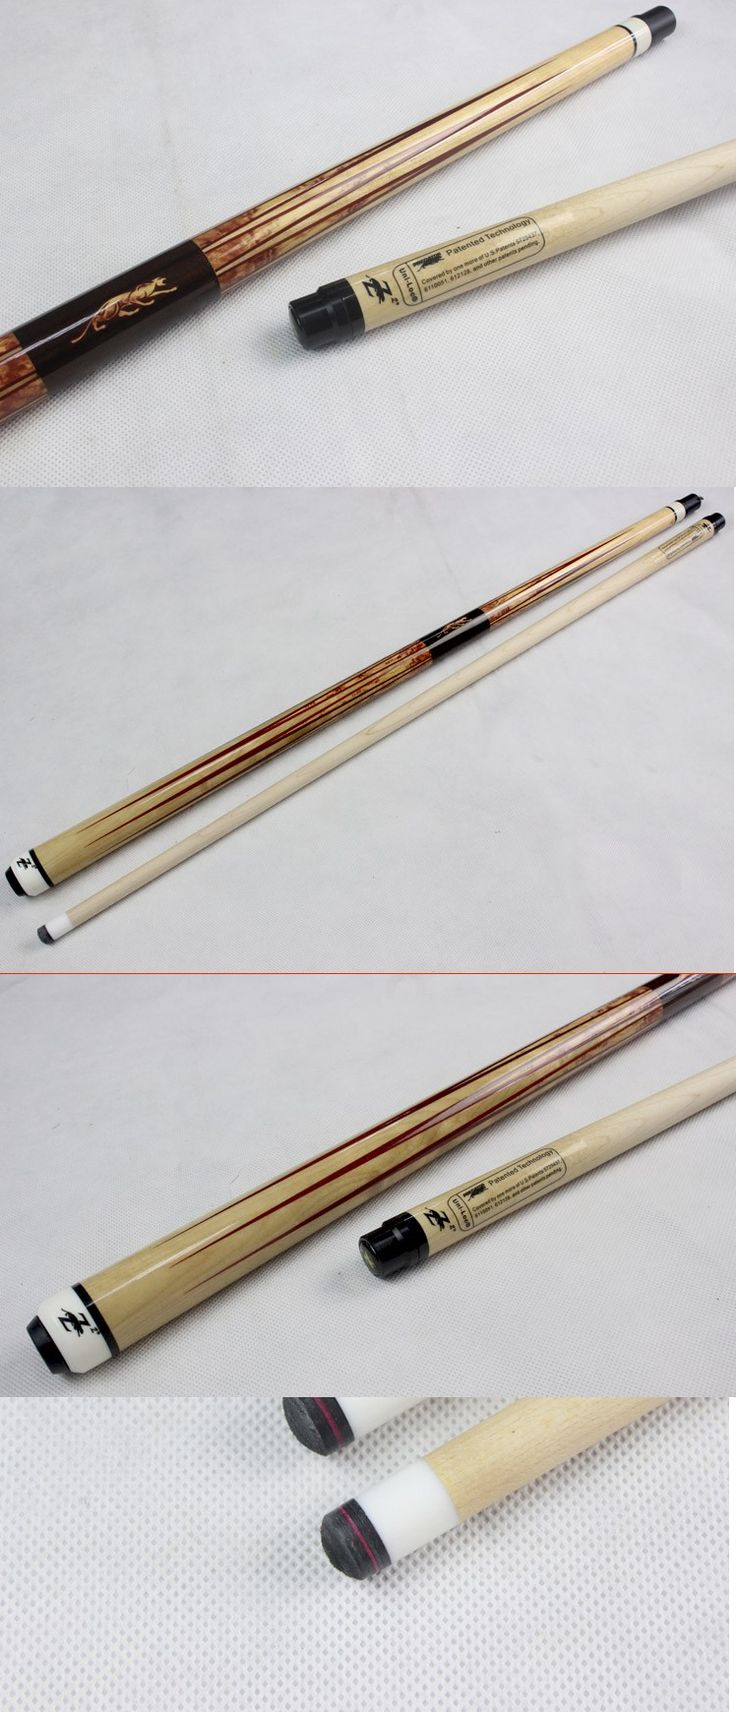 Cue Tips 75188: New Taco De Sinuca Pool Cues Billiard 11.5Mm Tips 1/2 Jointed Pool Cue Stick -> BUY IT NOW ONLY: $132.72 on eBay!